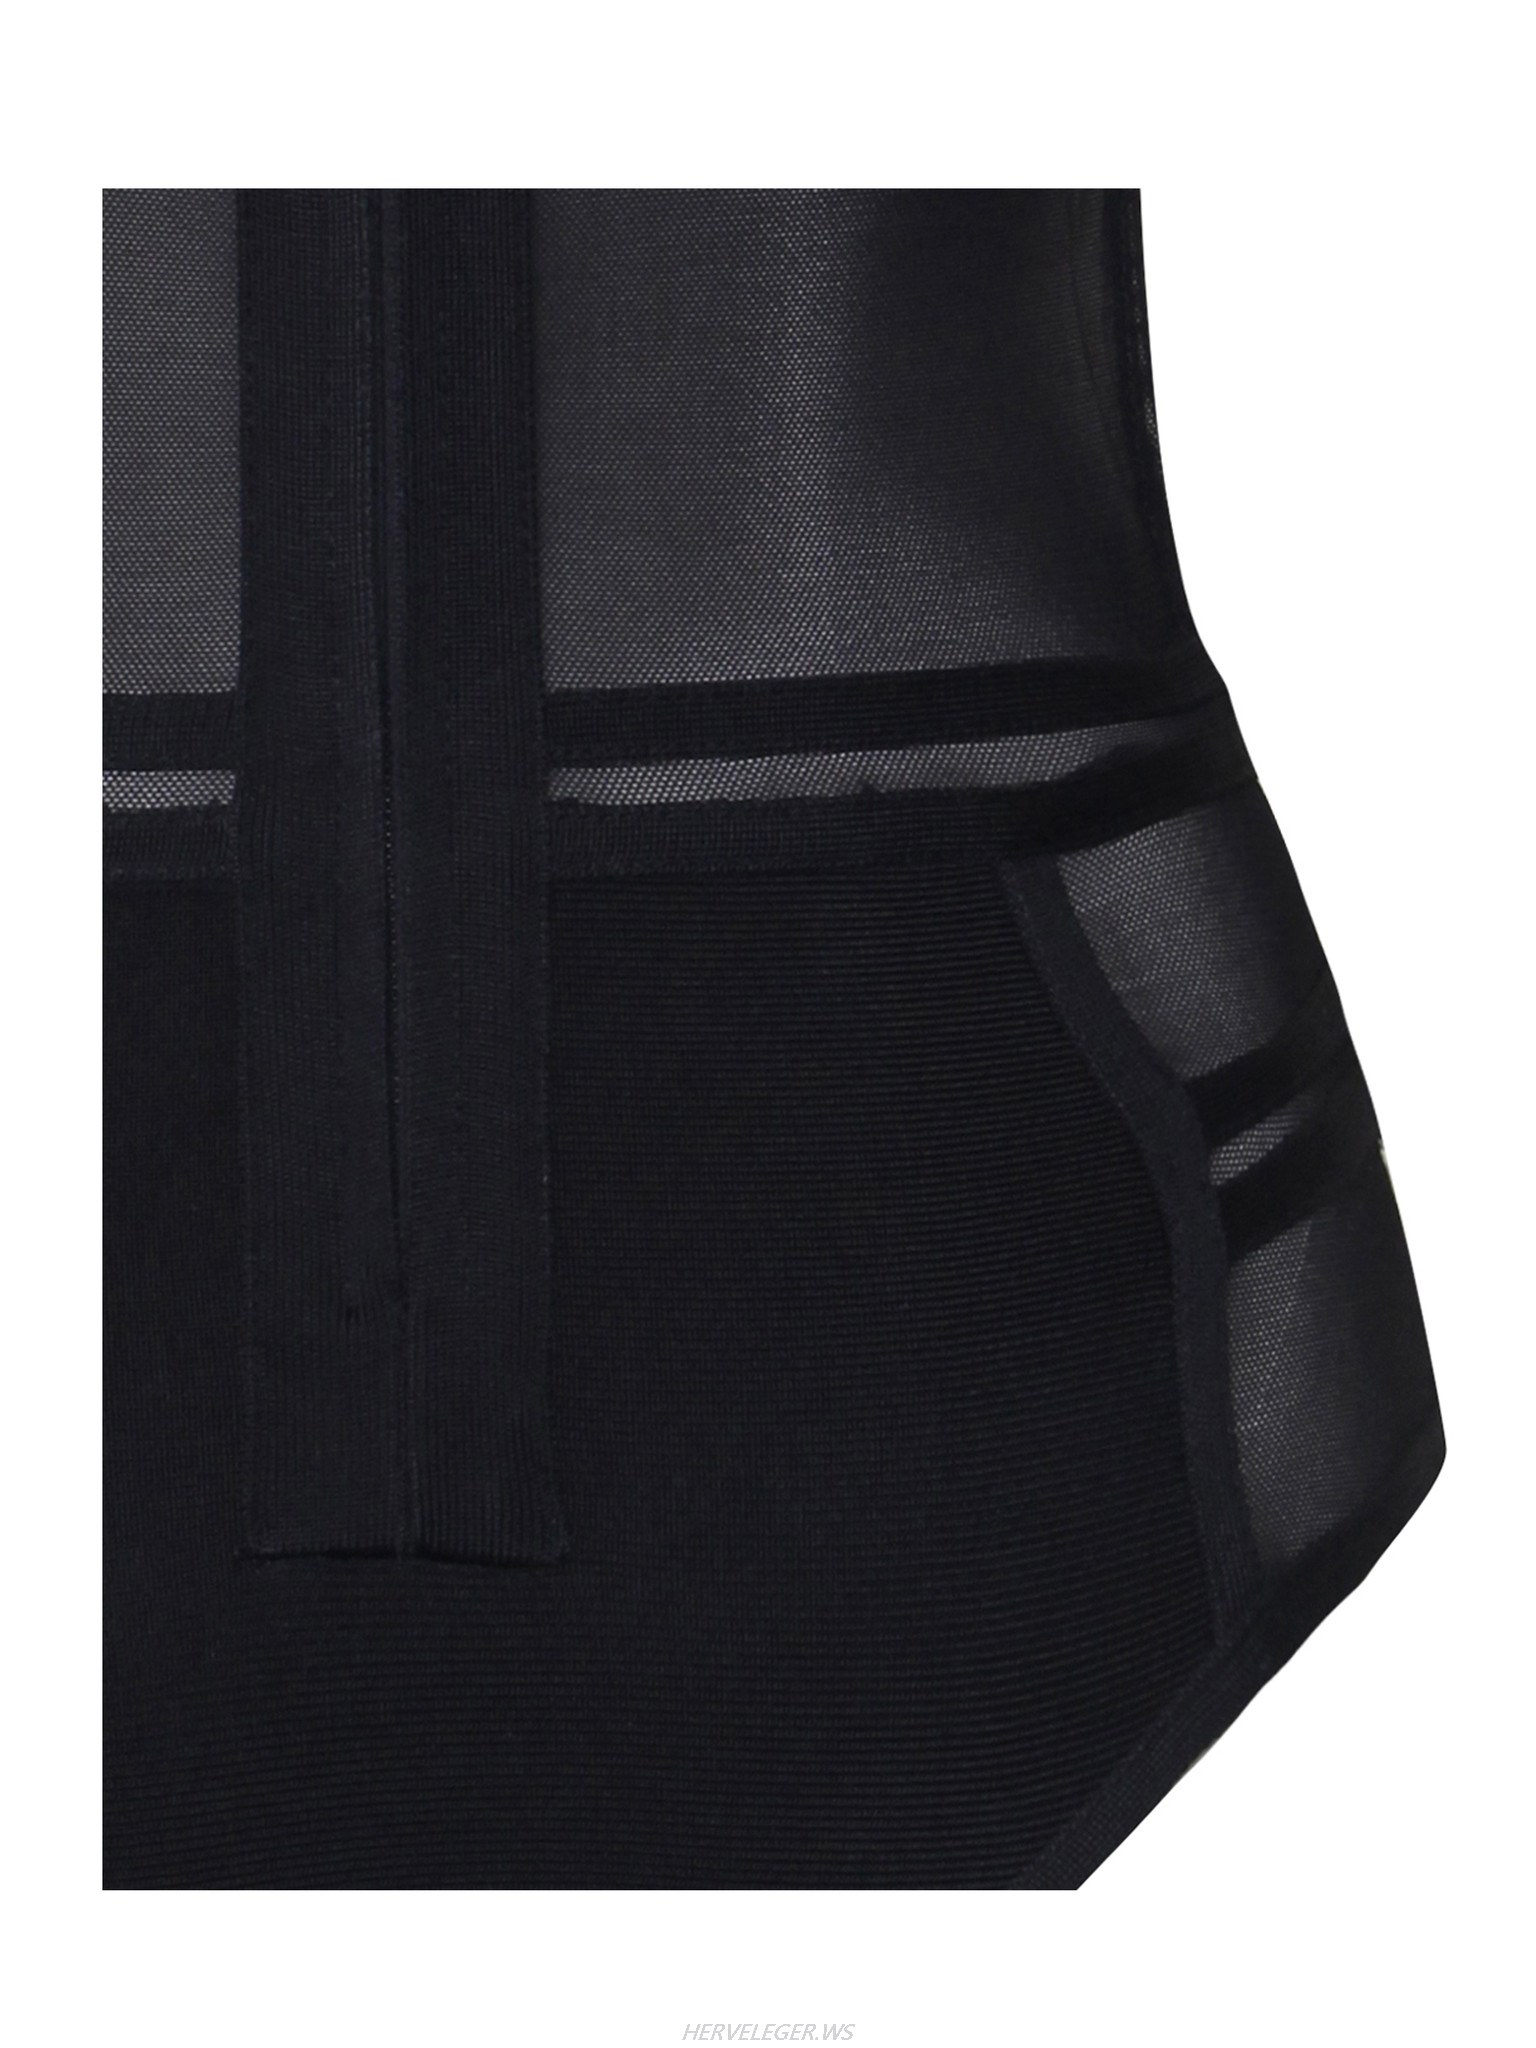 Herve Leger Korbin Sheer Cutout Detail Bodysuit